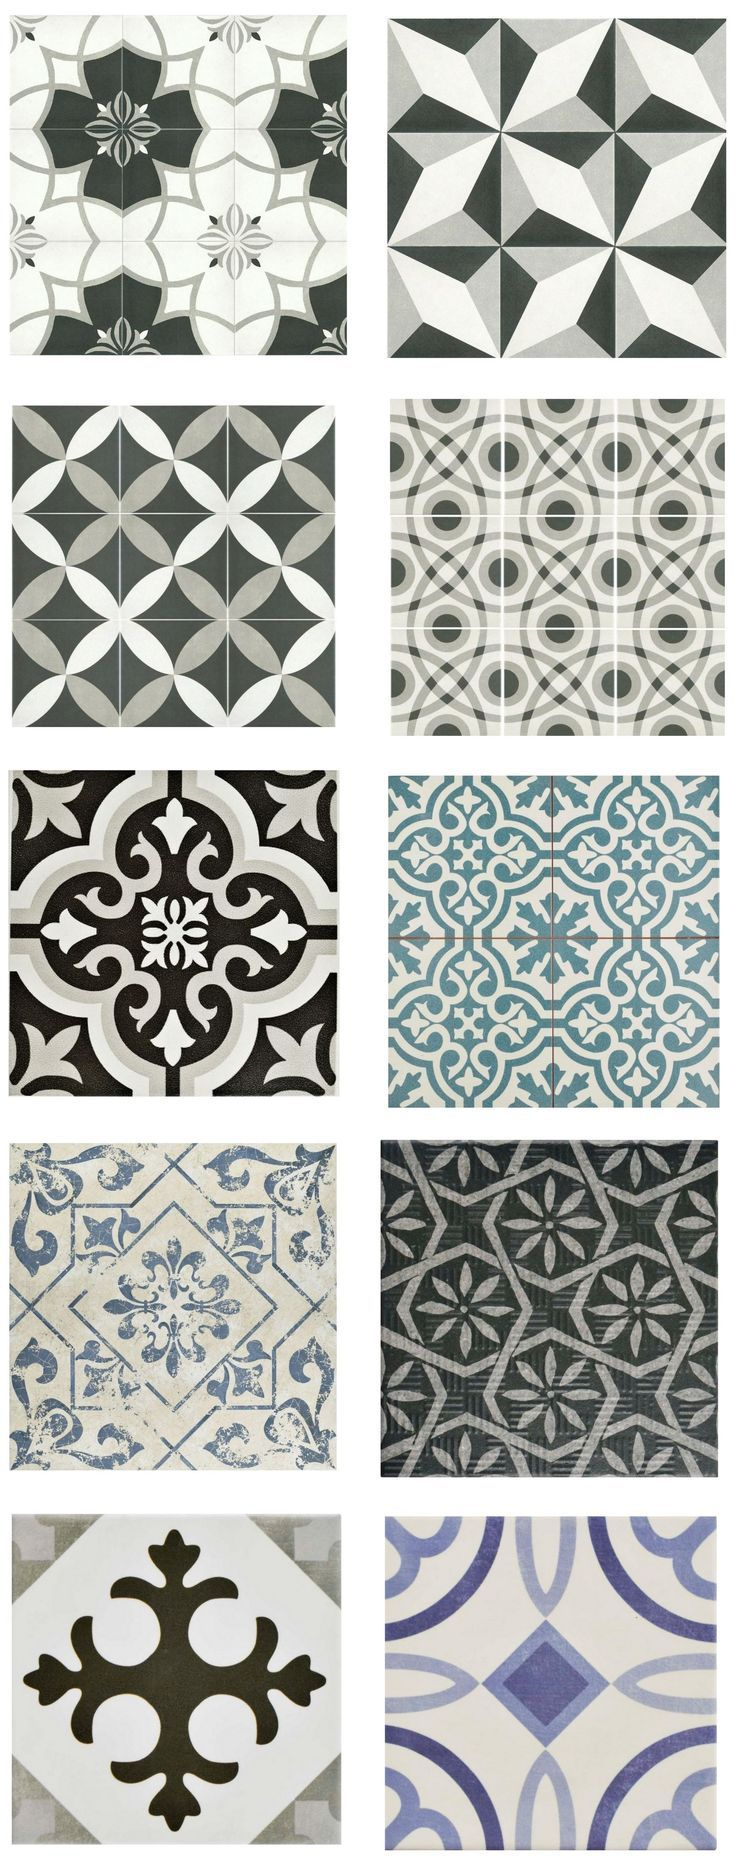 Cement Look Tile for Less